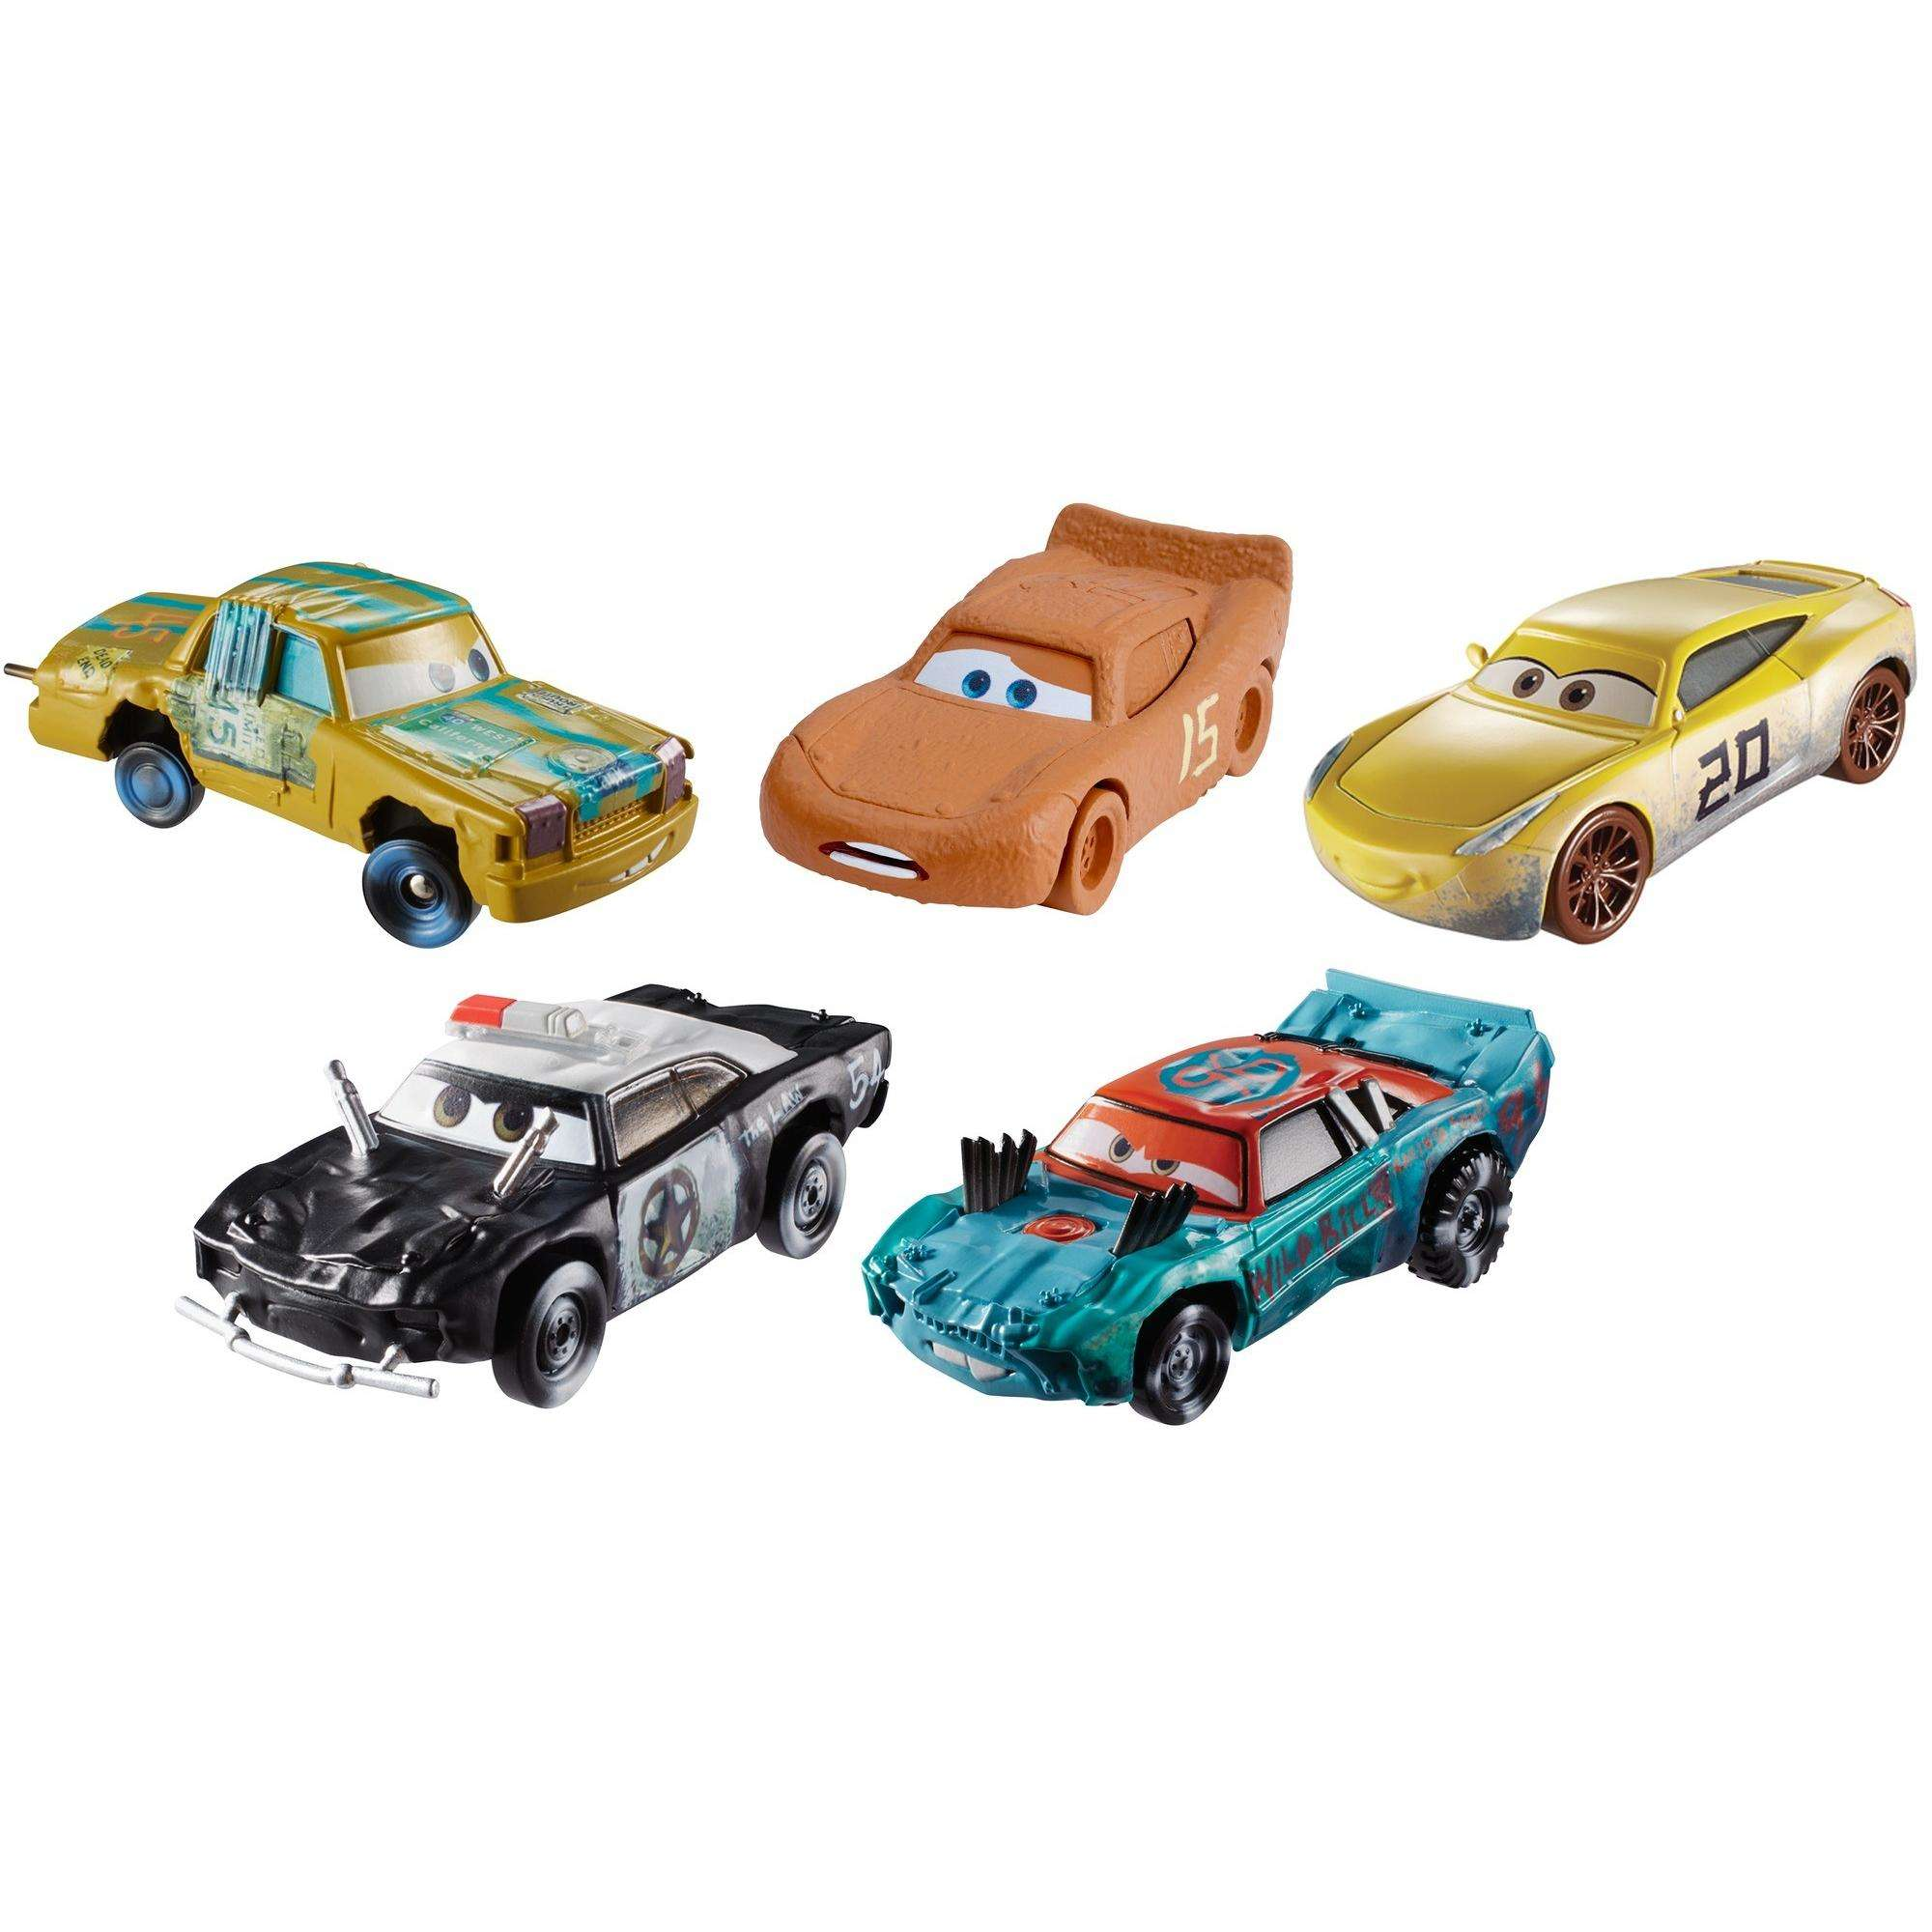 Disney/Pixar Cars 3 Crazy 8 Die-cast Vehicle 5-Pack